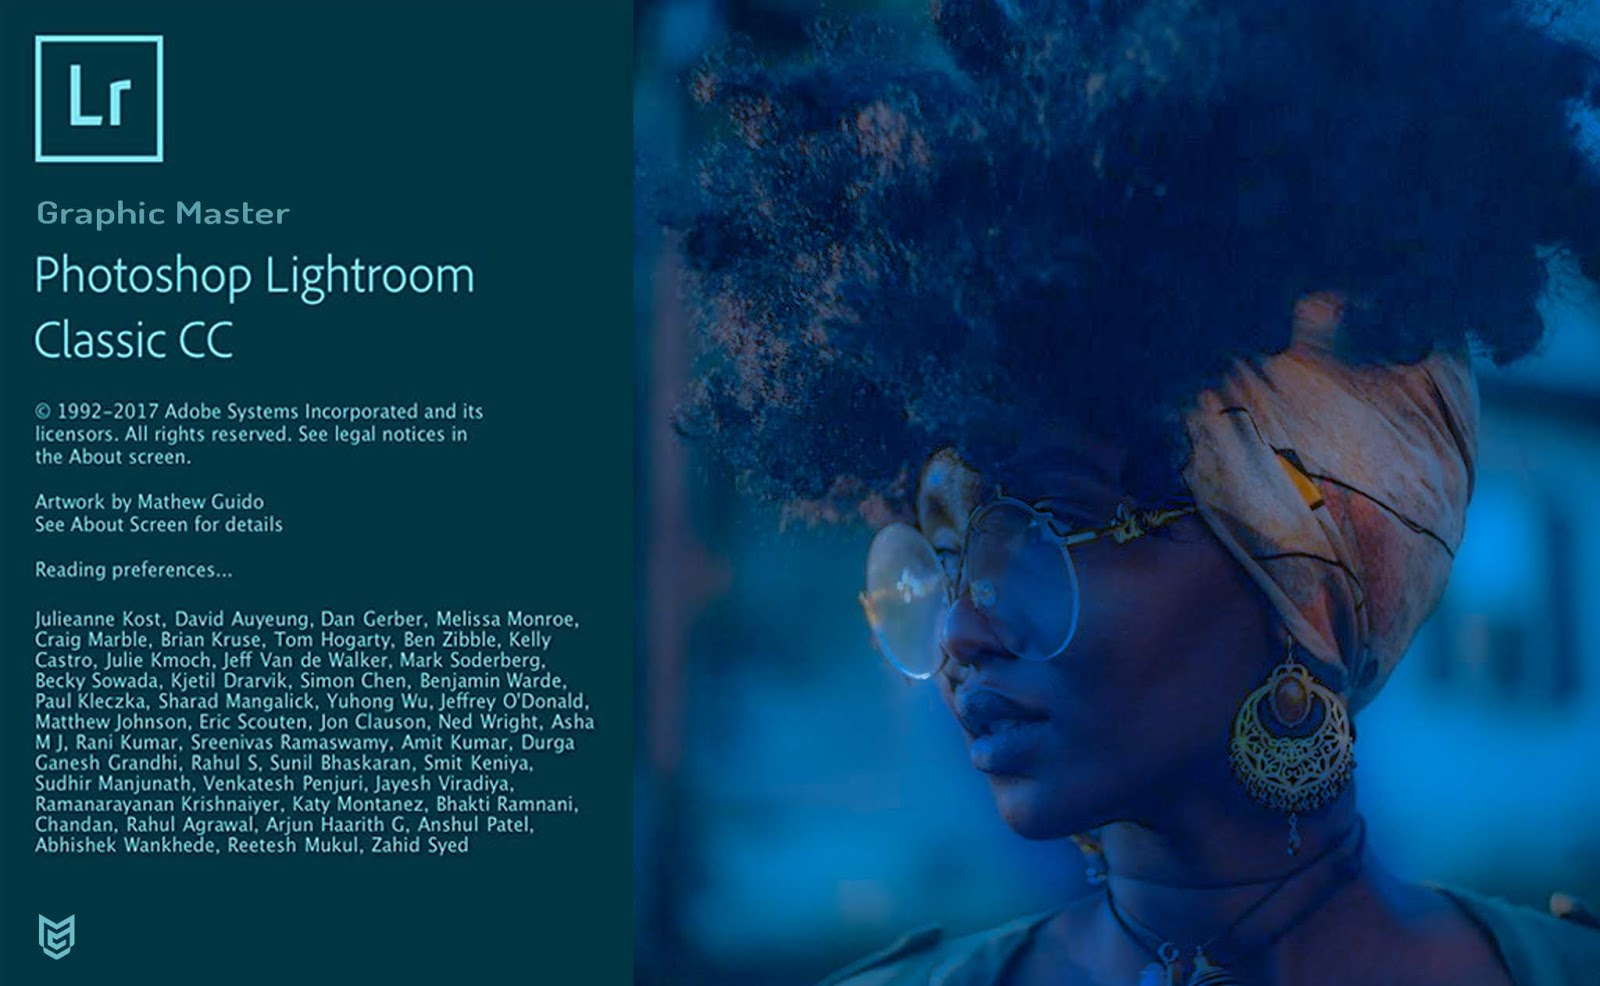 Tải Adobe Photoshop Lightroom CC 2019 full Cr@ck